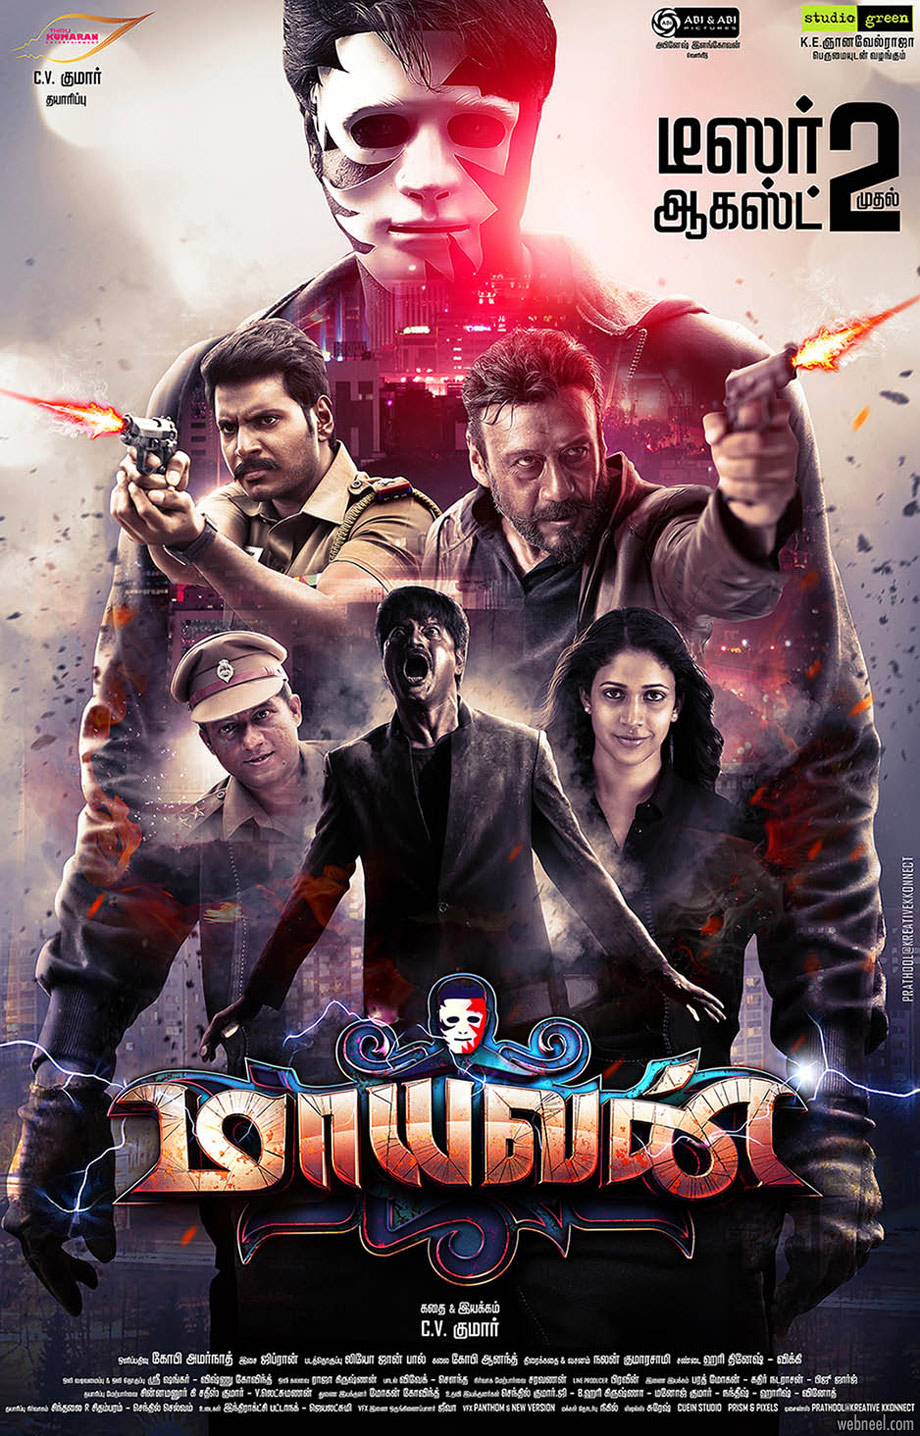 tamil movie poster design mayavan